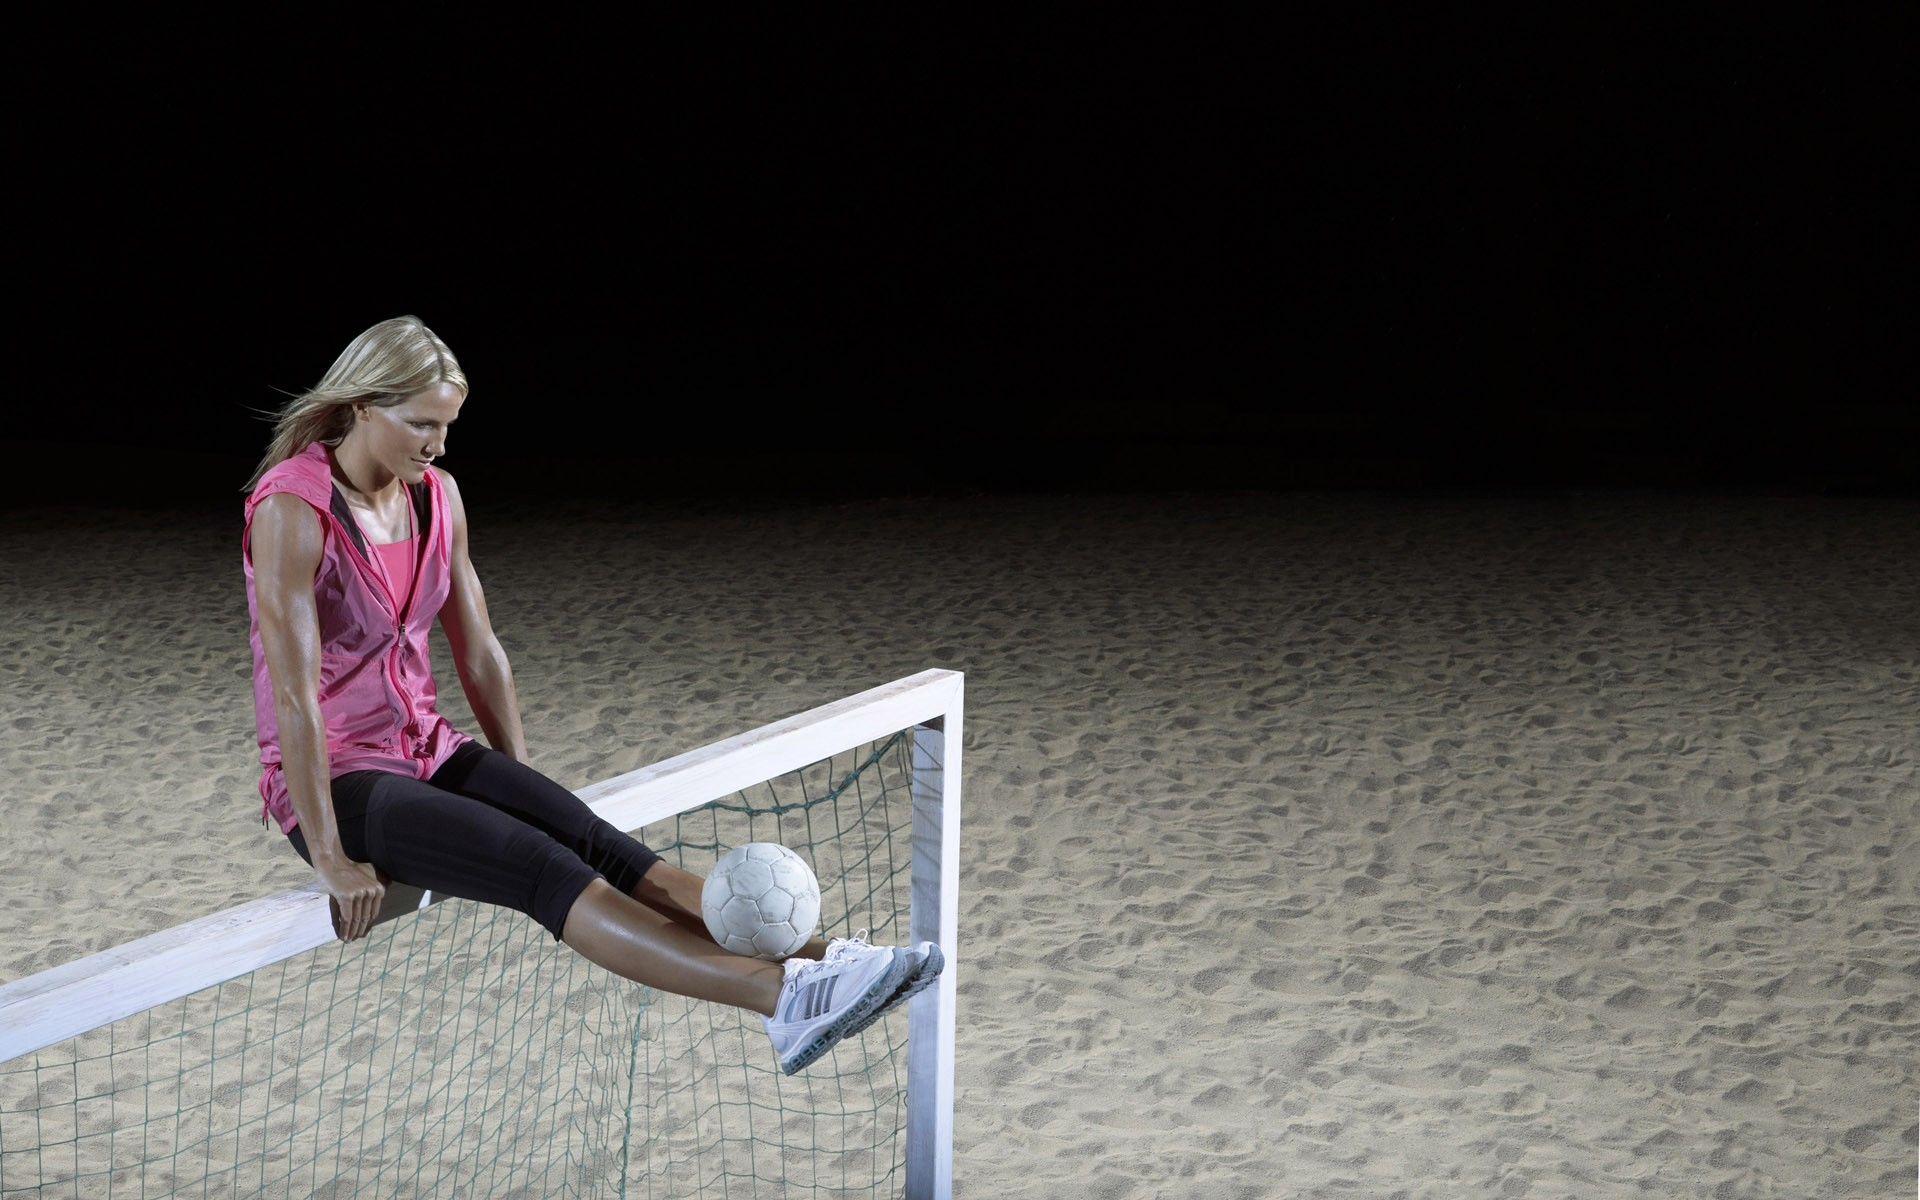 Volleyball Wallpaper Quotes 14 Volleyball Hd Wallpapers Backgrounds Wallpaper Abyss